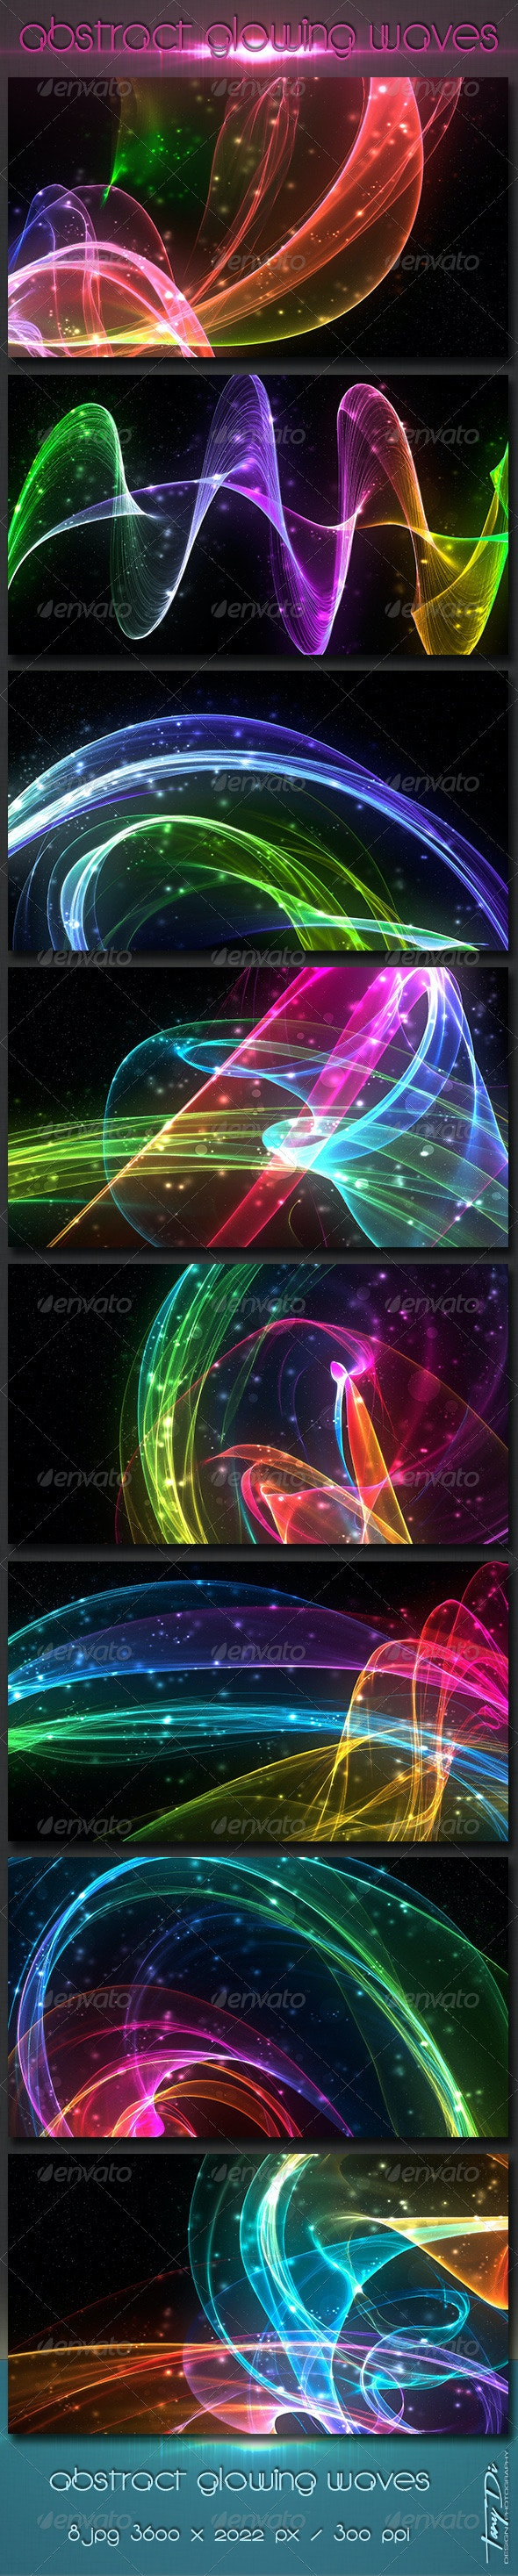 Abstract Glowing Waves - Abstract Backgrounds